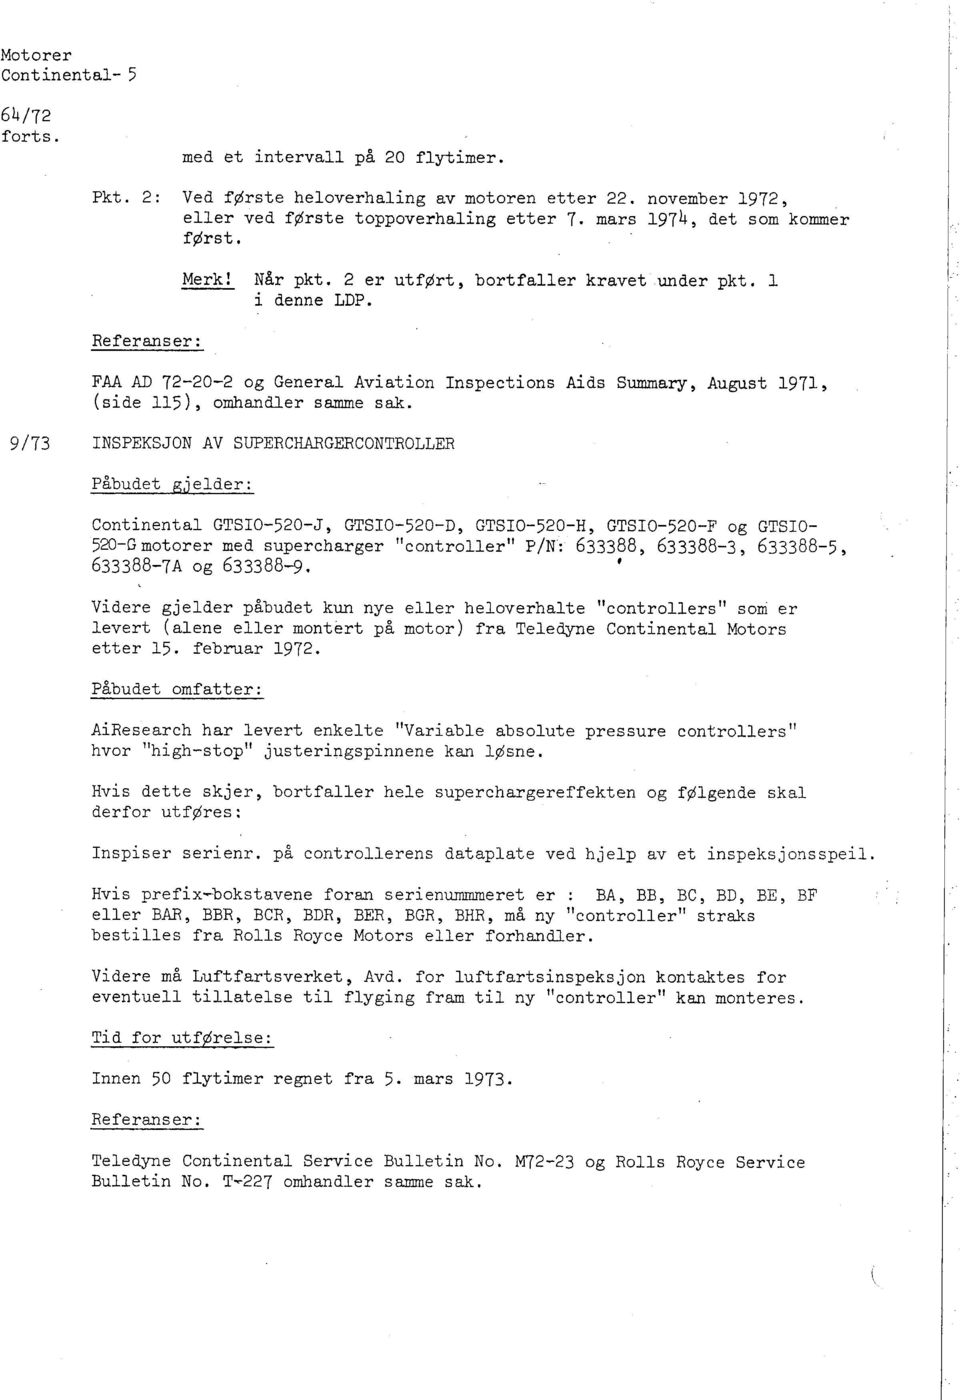 L Referanser: FAA AD 72-20-2 og General Aviation Inspections Aids Sumary ~ August 1971 ~ (side 115) ~ omhandler same sak.